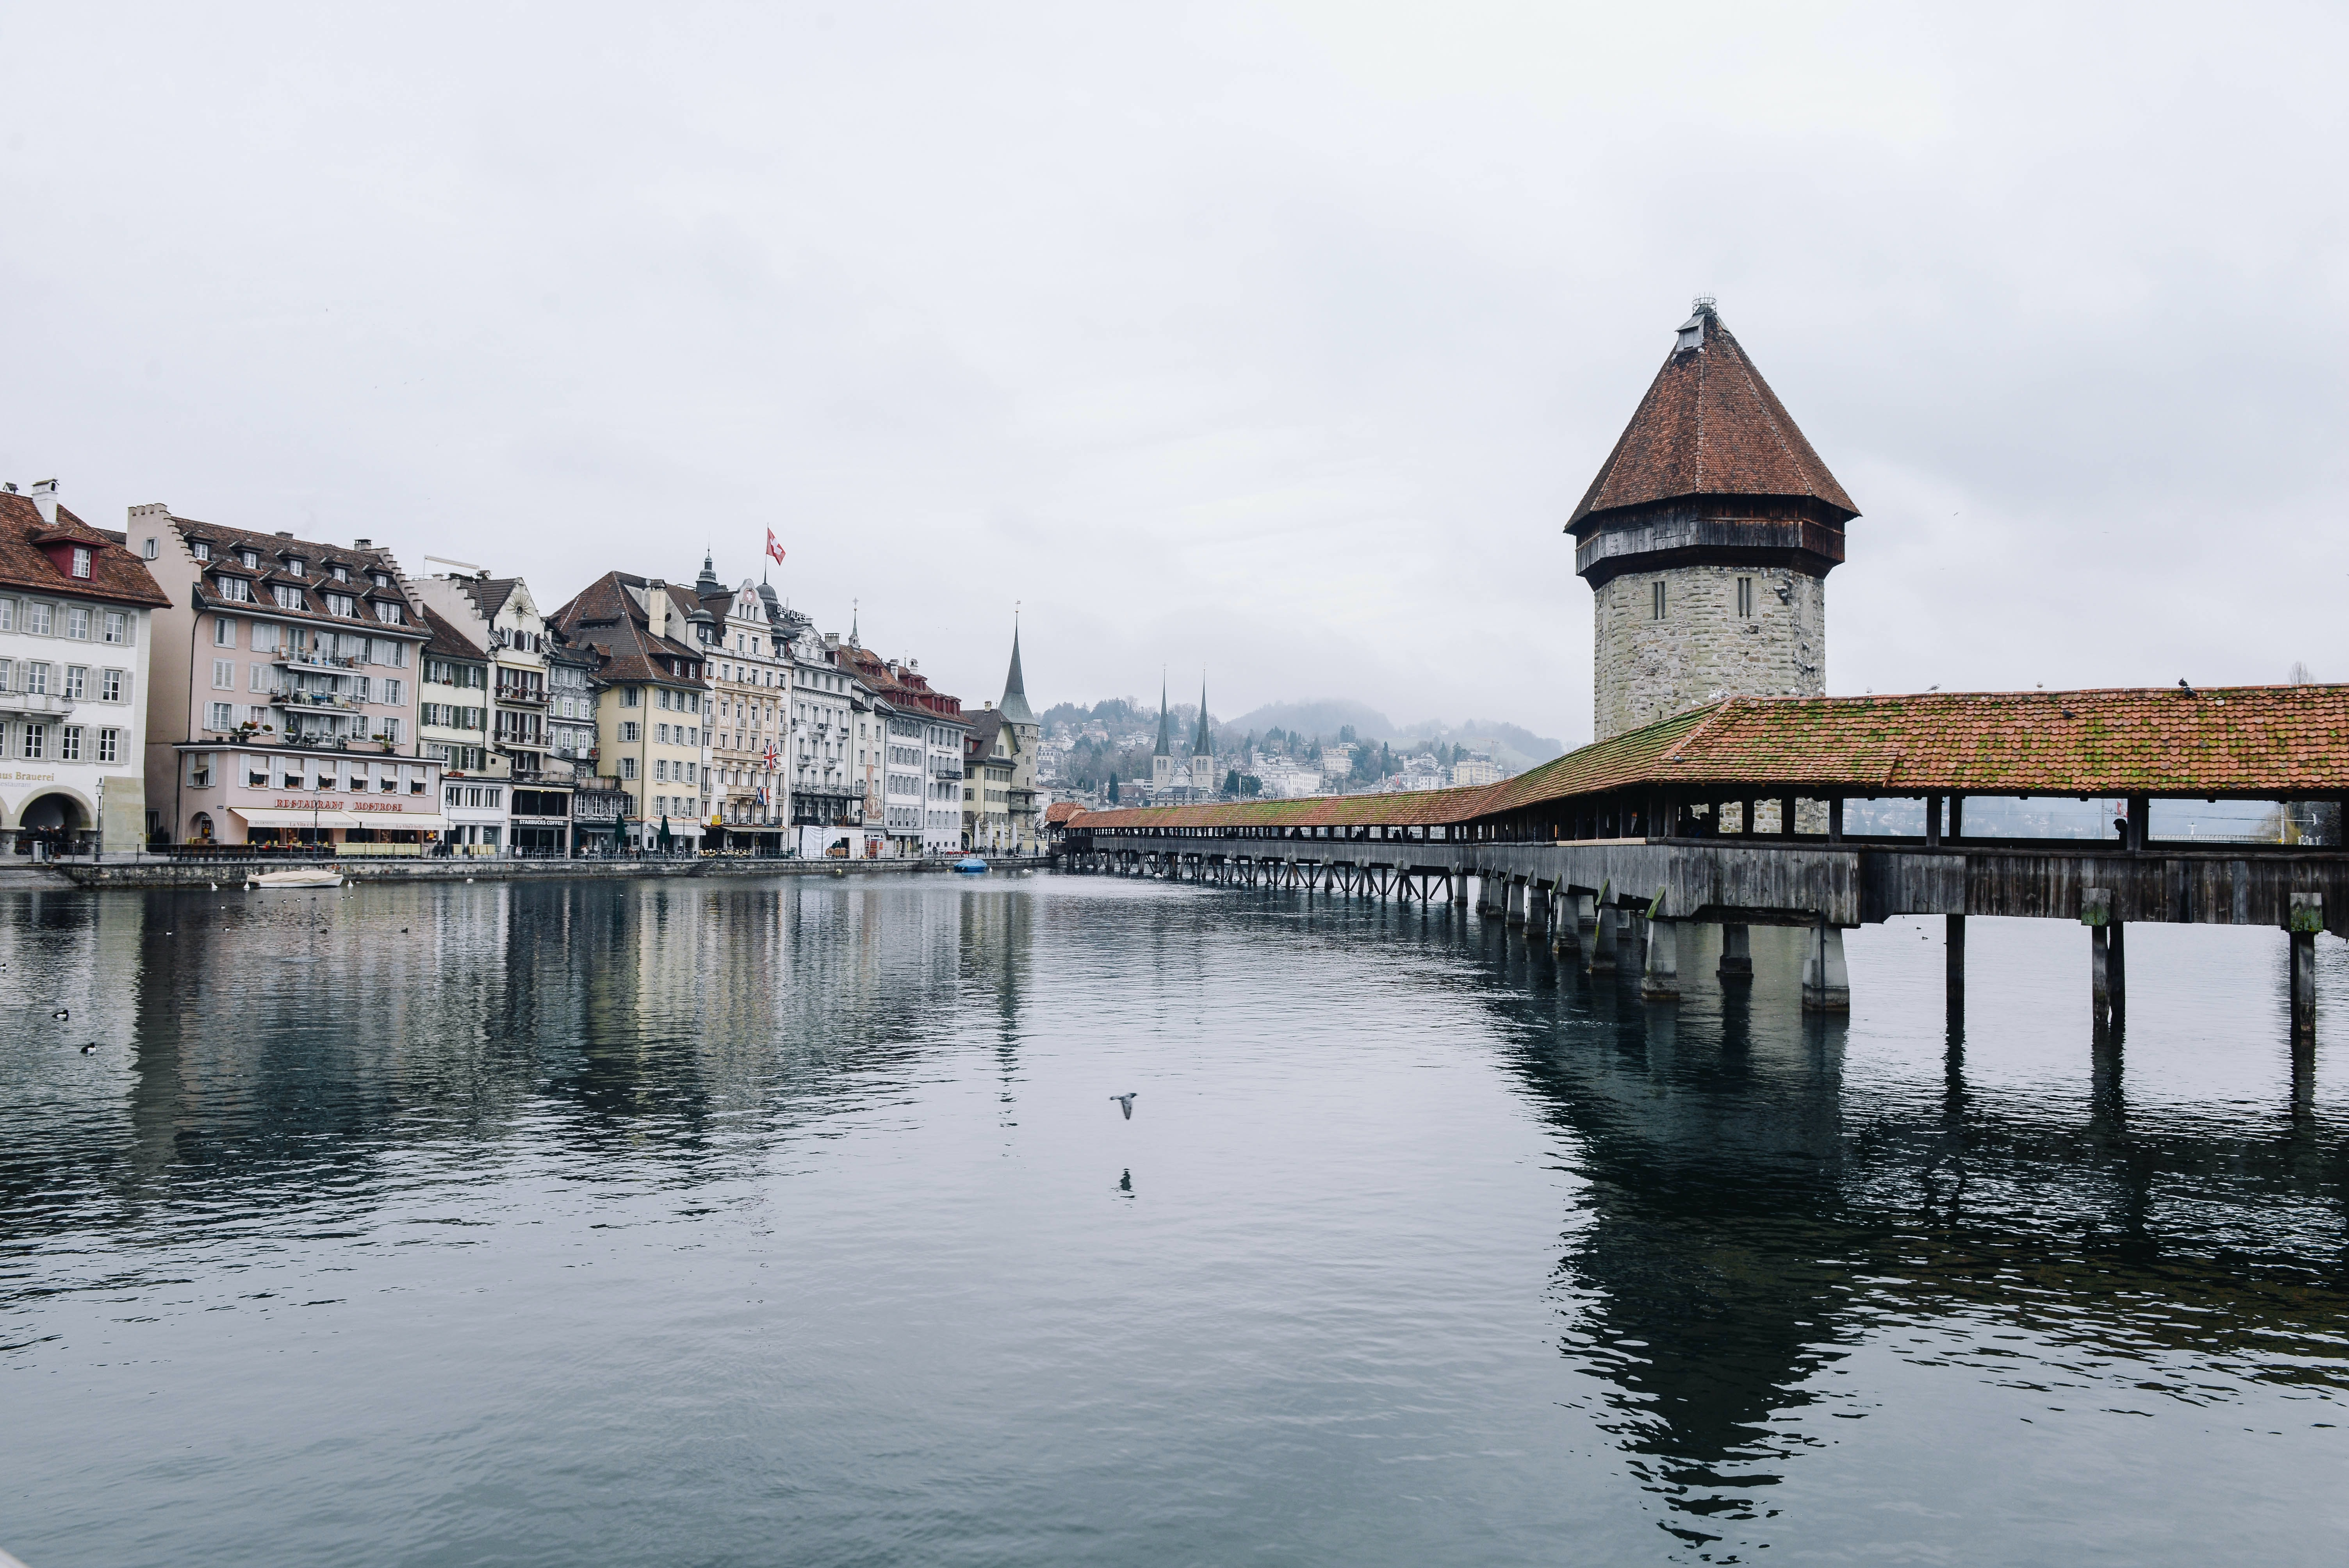 View of buildings and a bridge at the lakeside in Lucerne on a foggy day